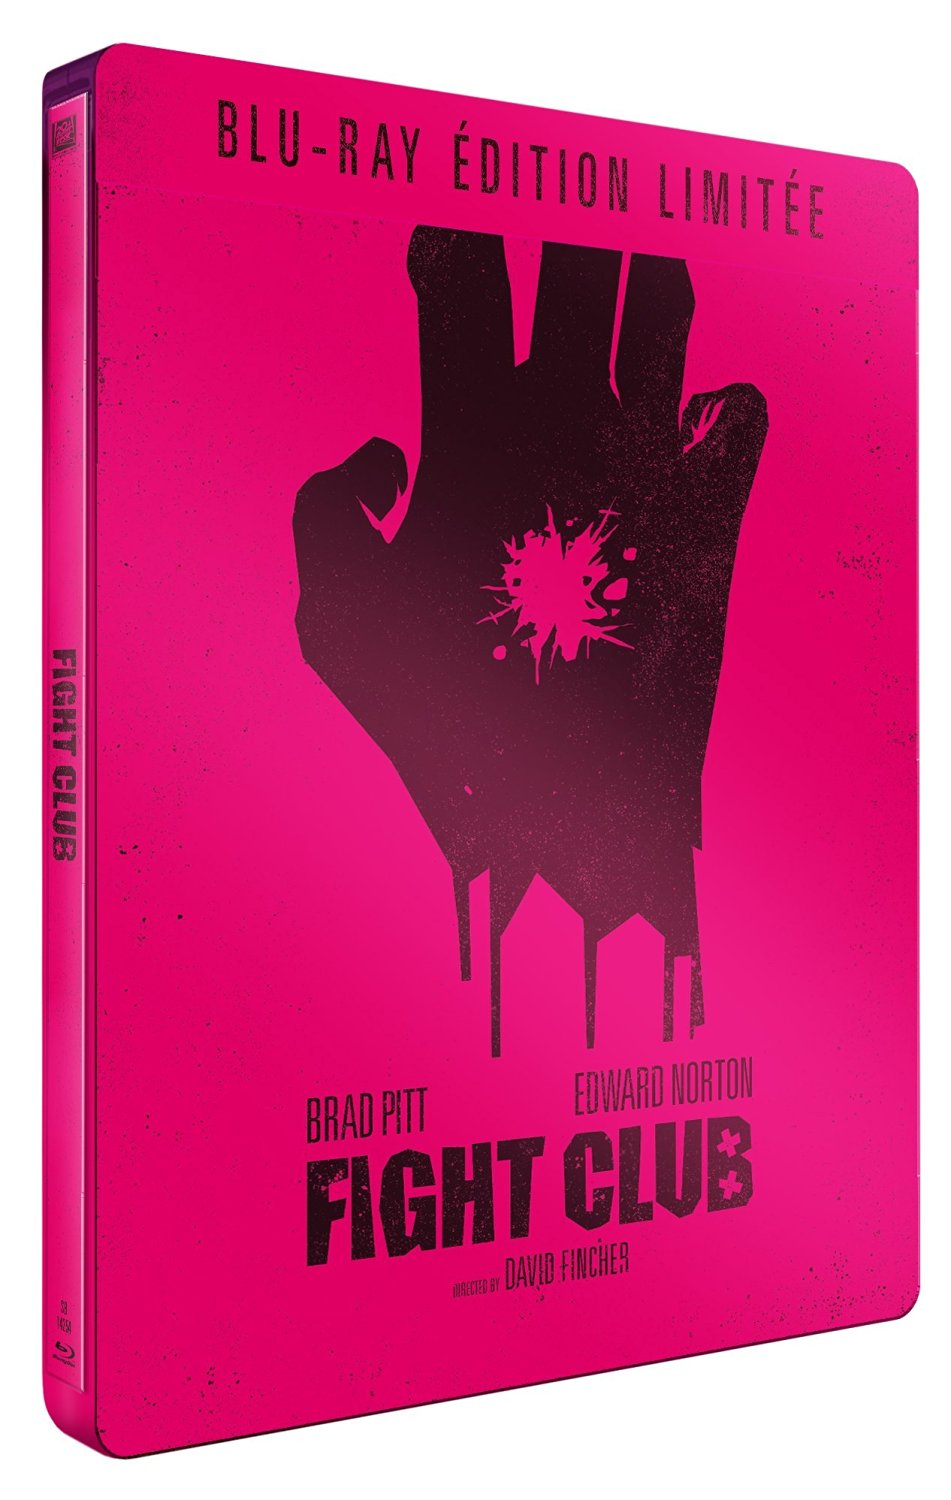 Blu-ray Fight Club - Steelbook Edition Limitée - Blu-ray pas cher Amazon